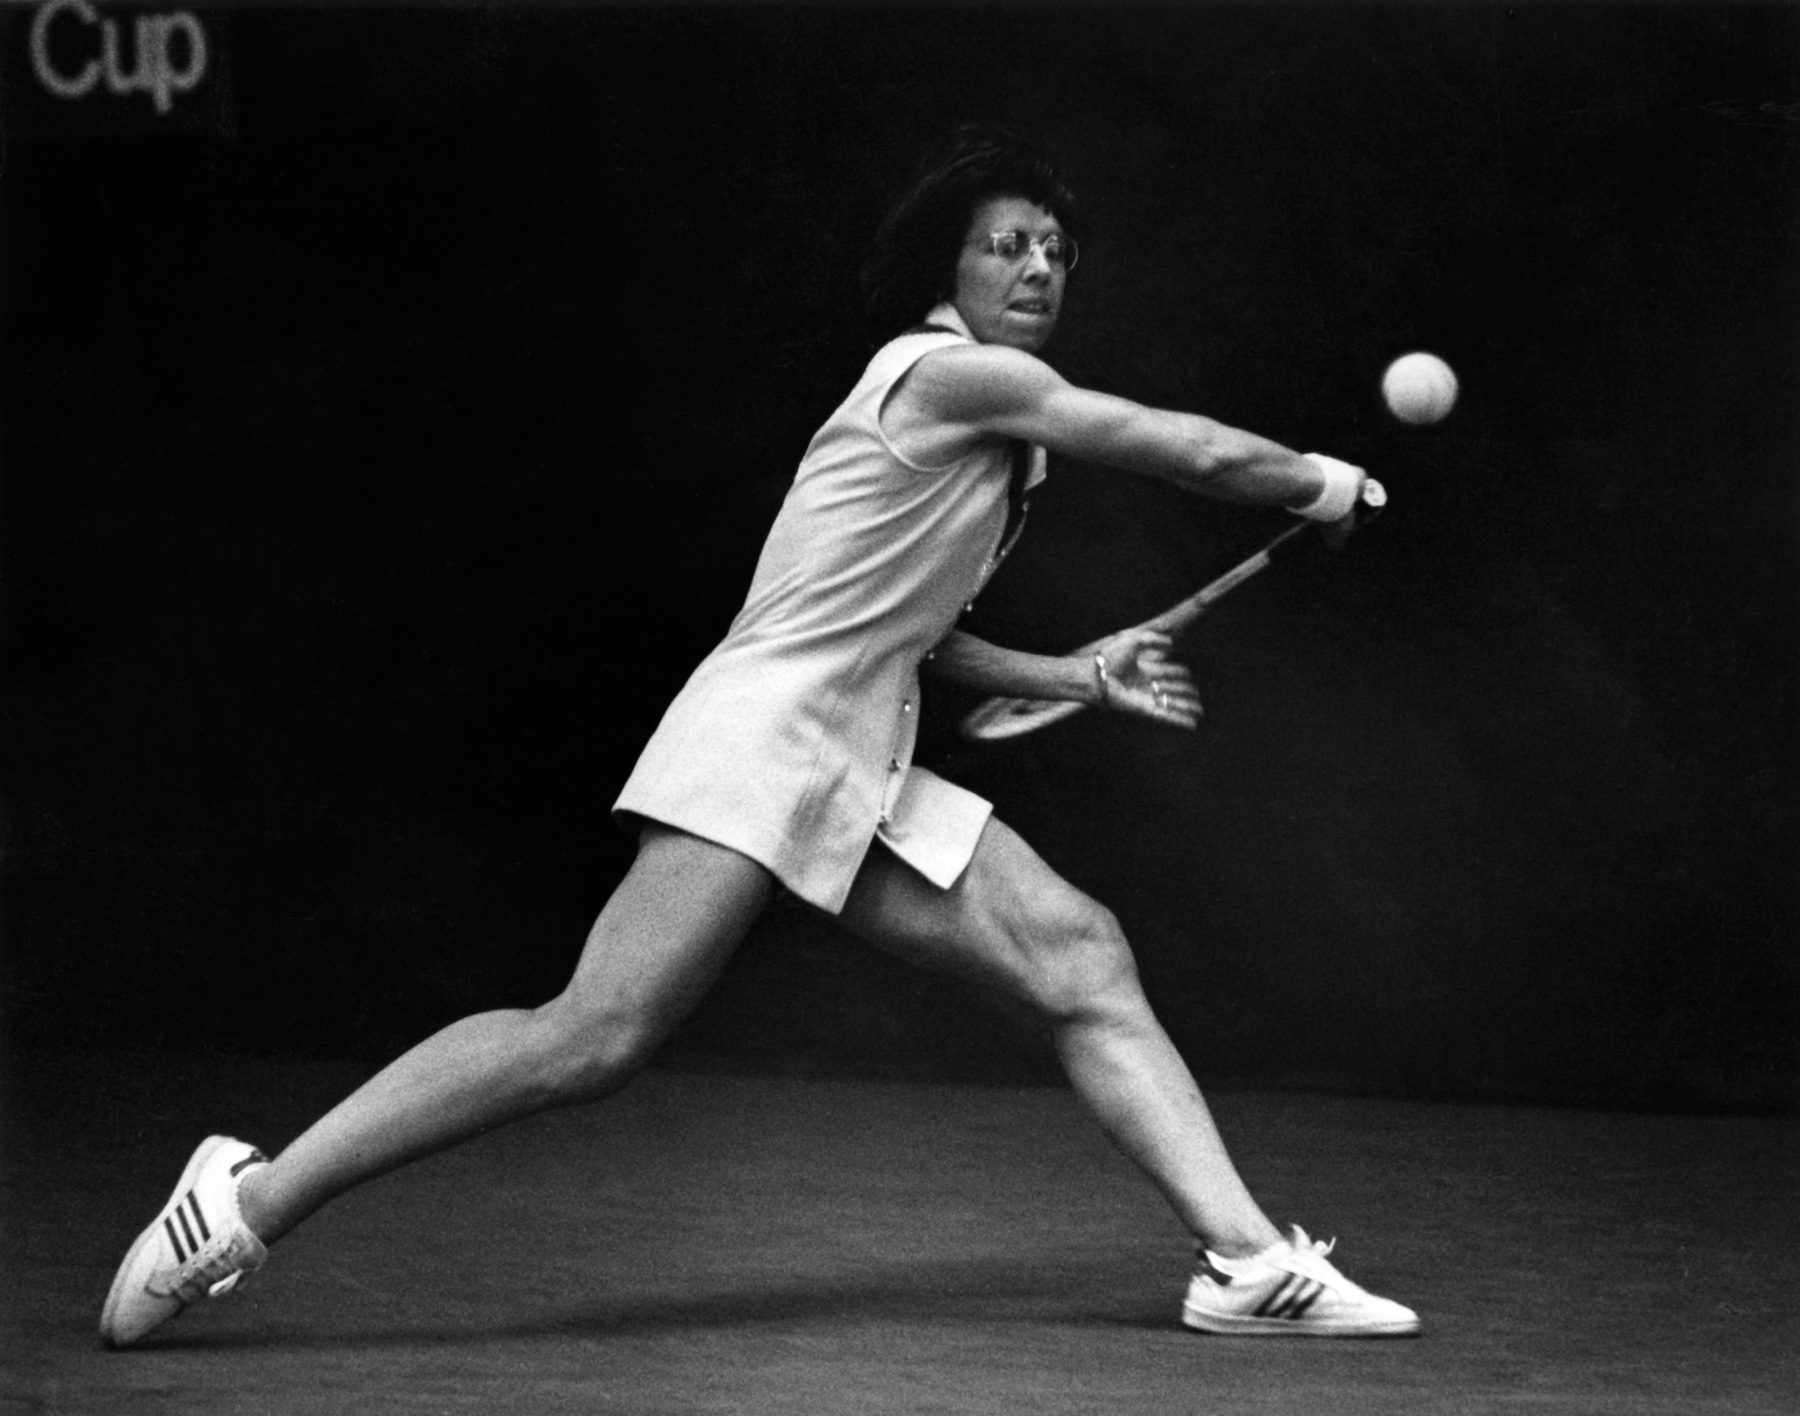 Black and white photo of Billie Jean King playing tennis.